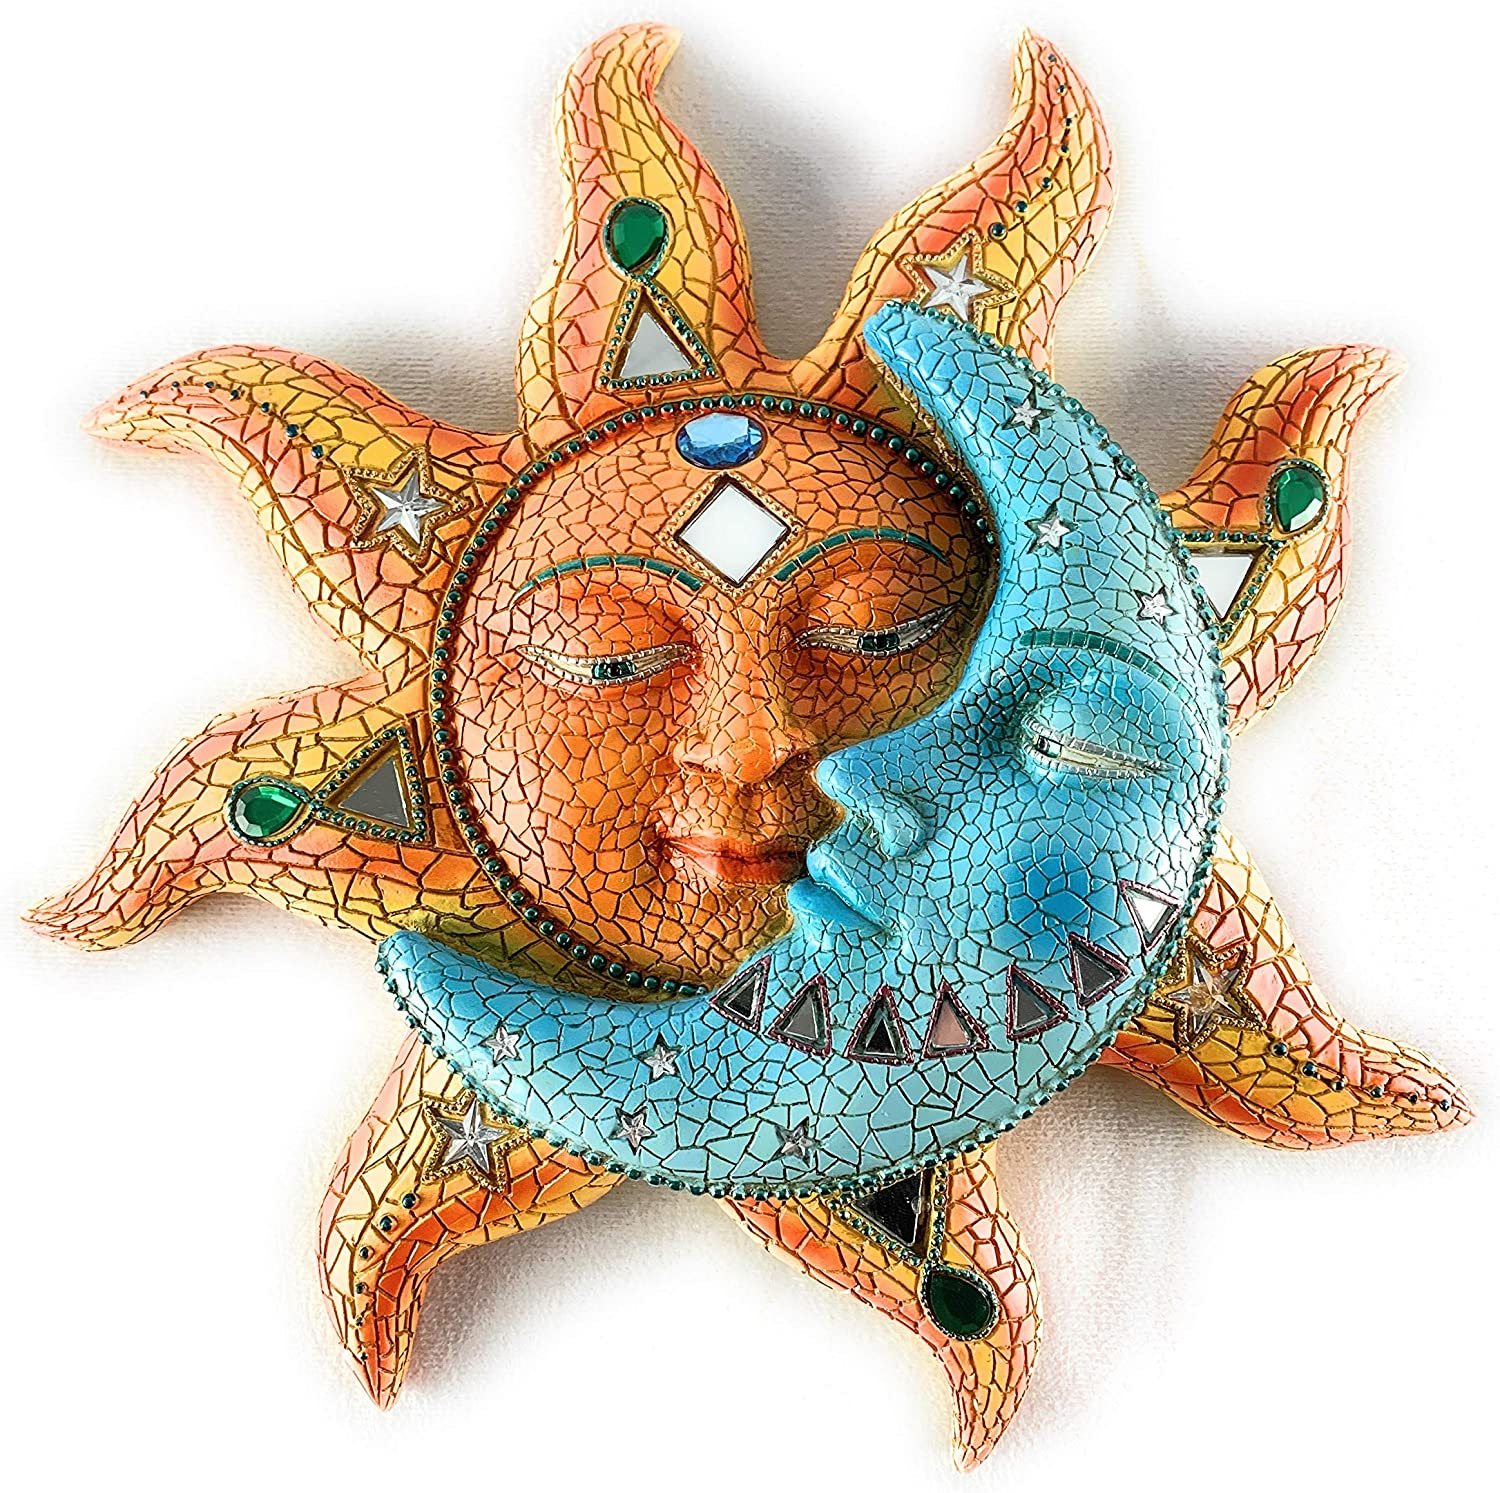 Sun And Blue Moon 3D Mosaic Celestial Face Decor Indoor Outdoor Wall Art Plaque Sculpture Mount For Inside Home Living Room Bedroom Bathroom Kitchen Or Outside Patio Fence Porch,11.5X11.5 inch